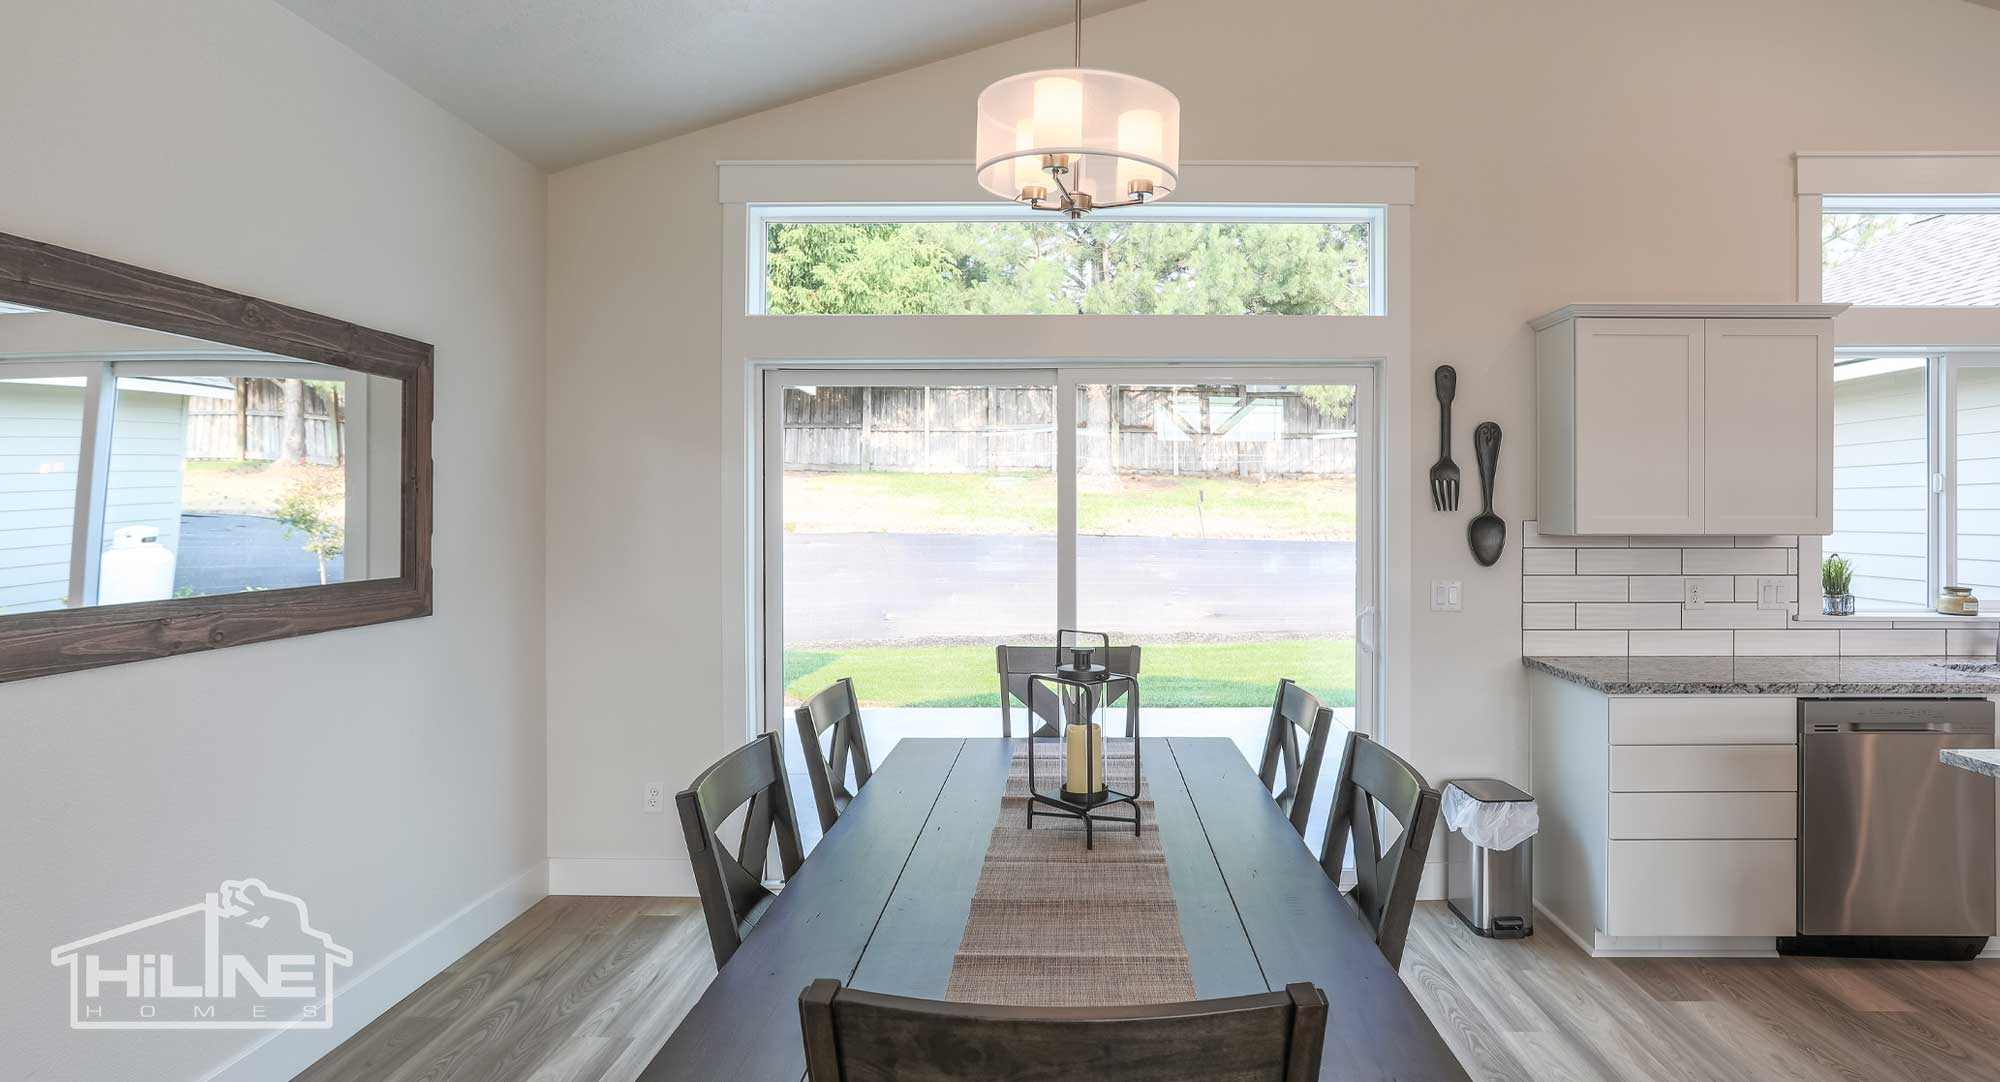 Image of HiLine Homes of Meridian Dining Room